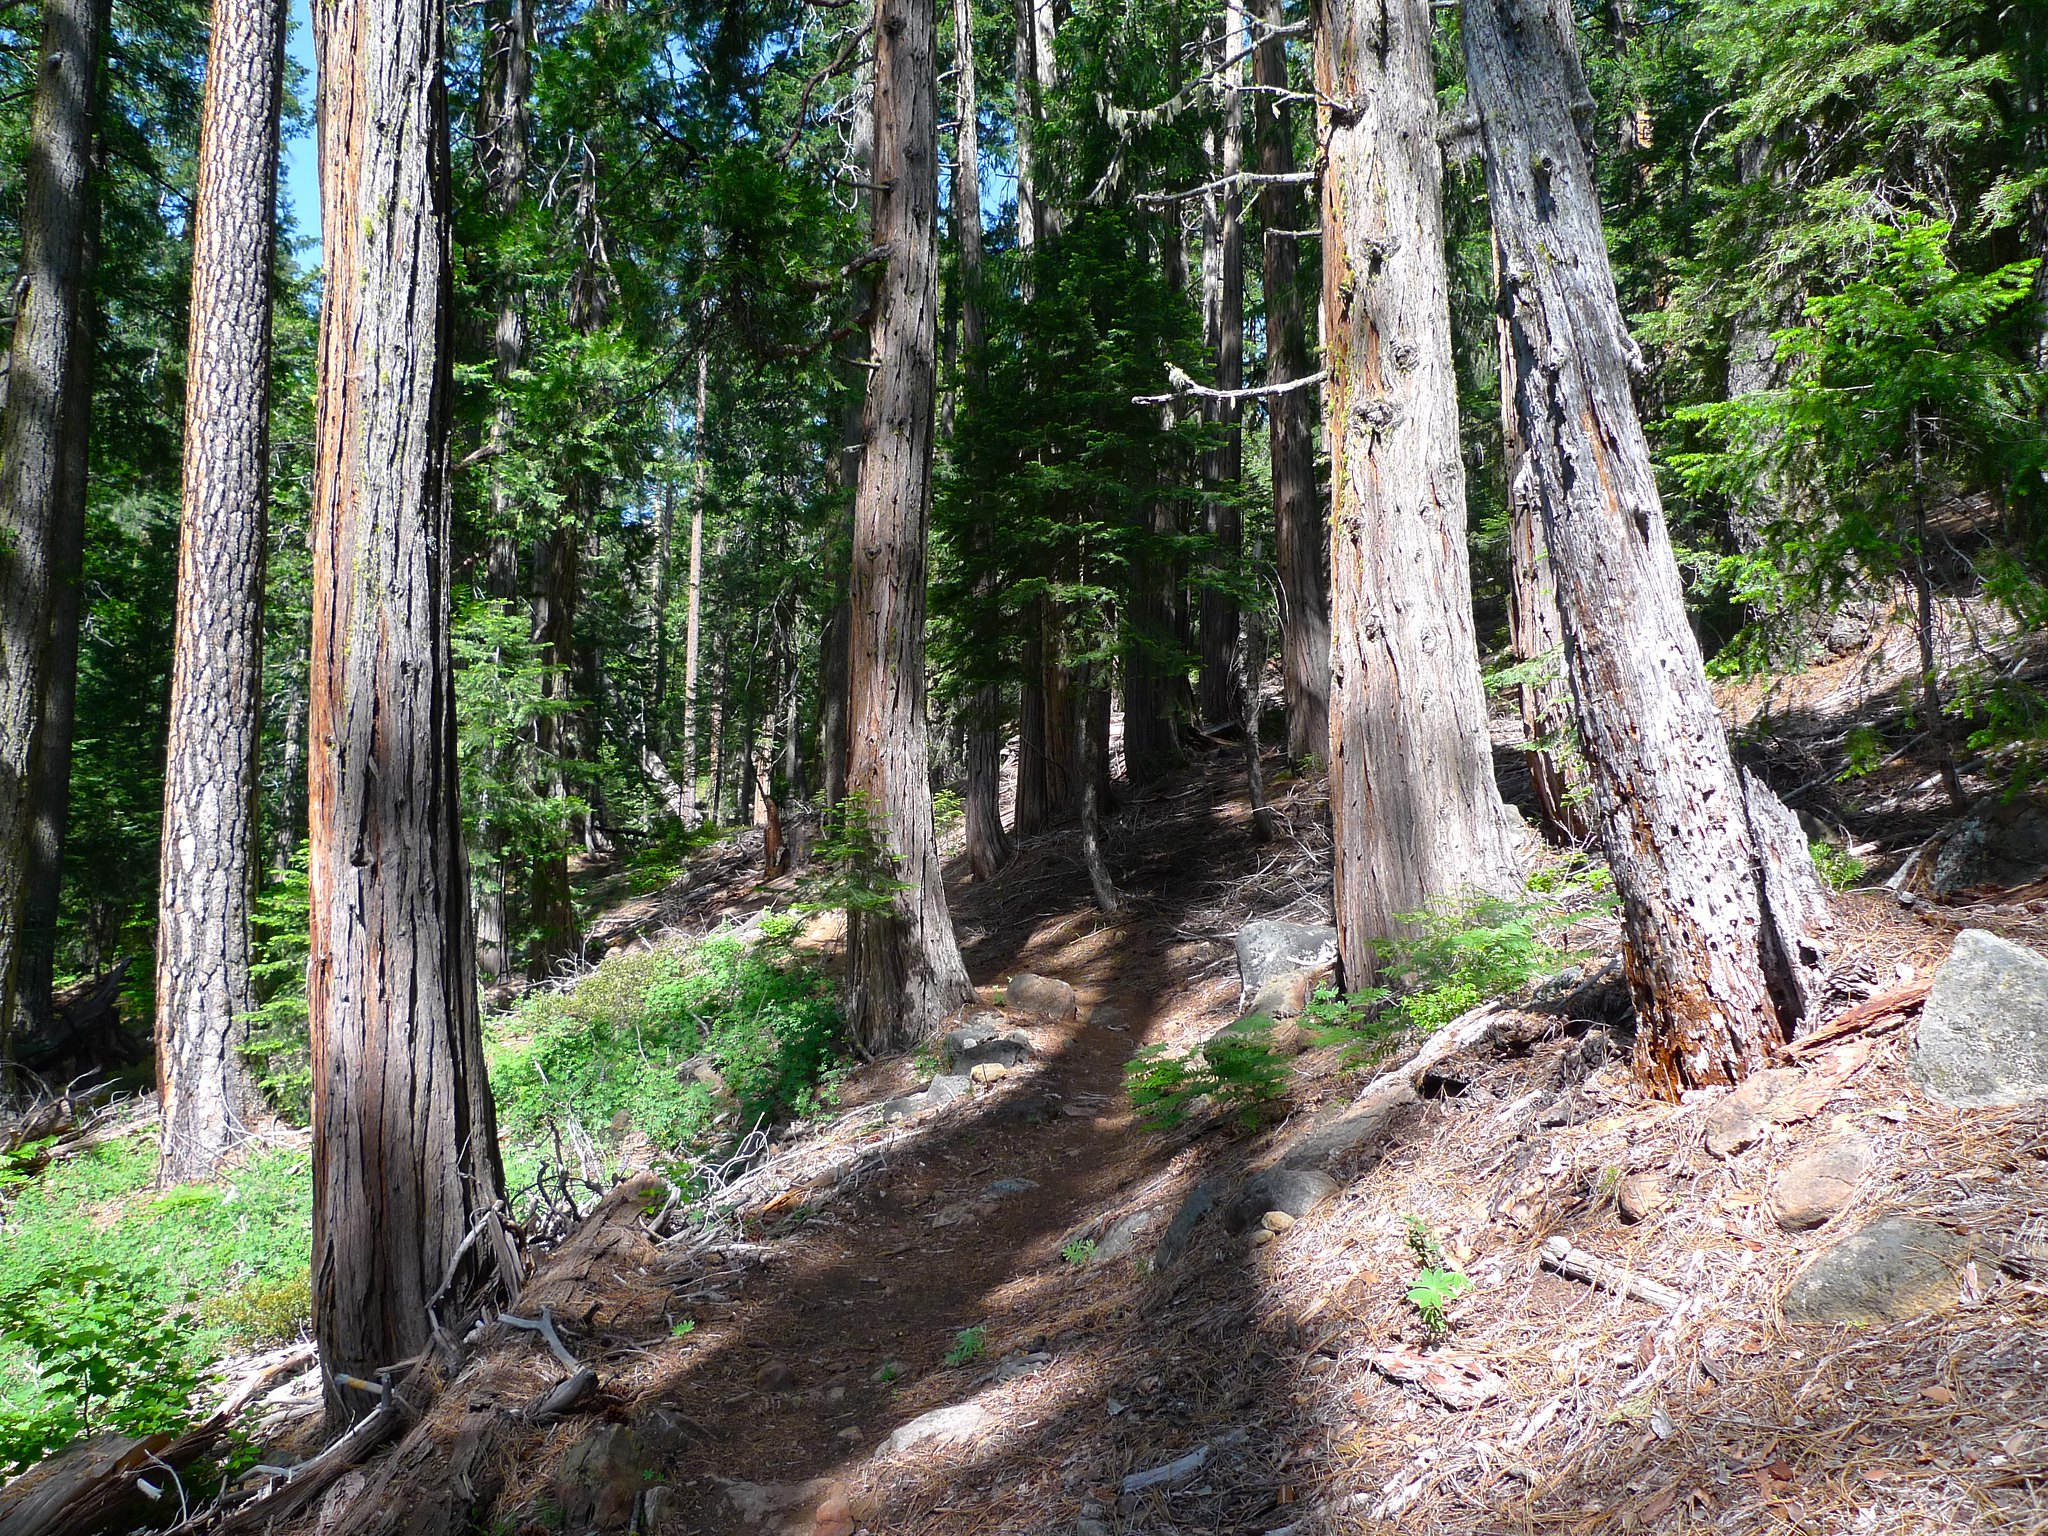 The first few miles are heavily forested